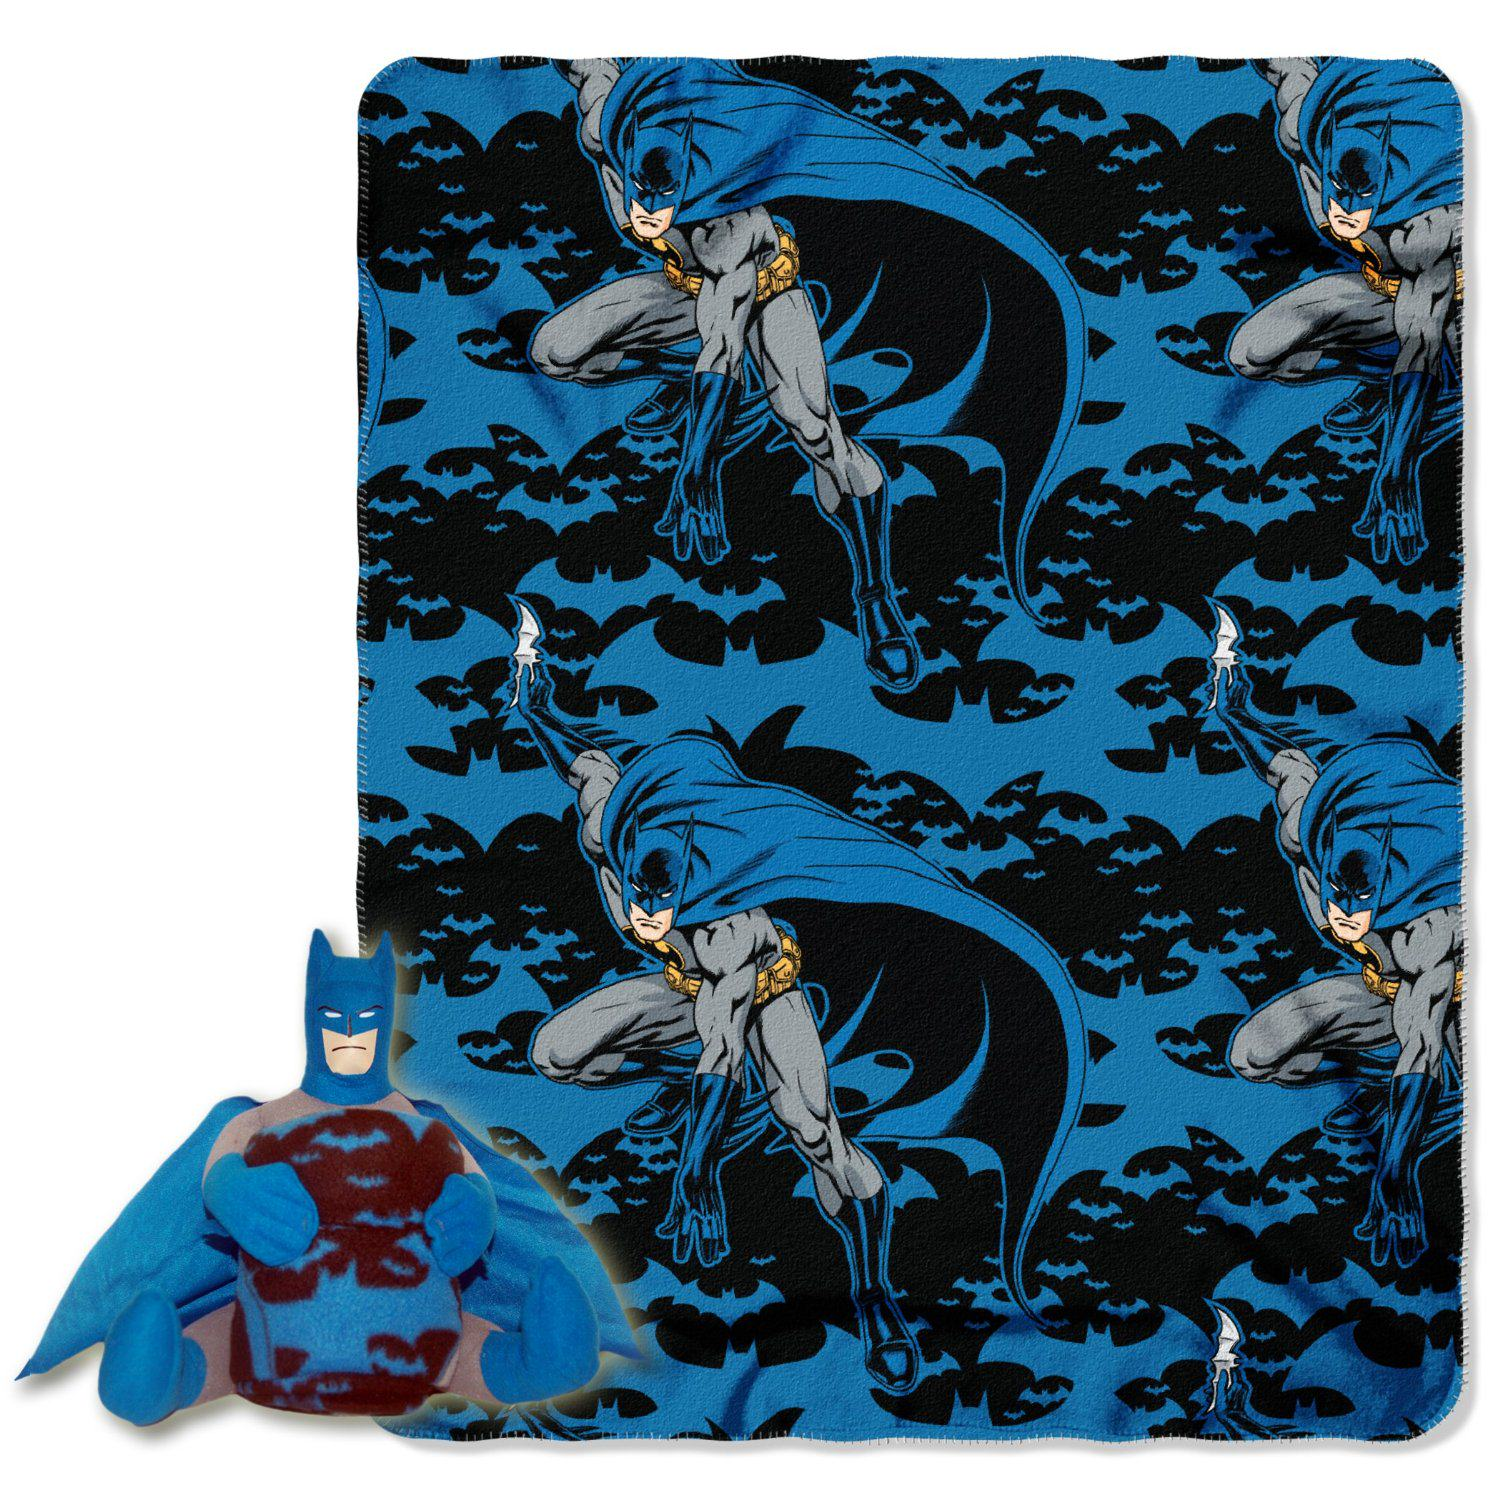 Batman Throw Blankets - The Blanket Store